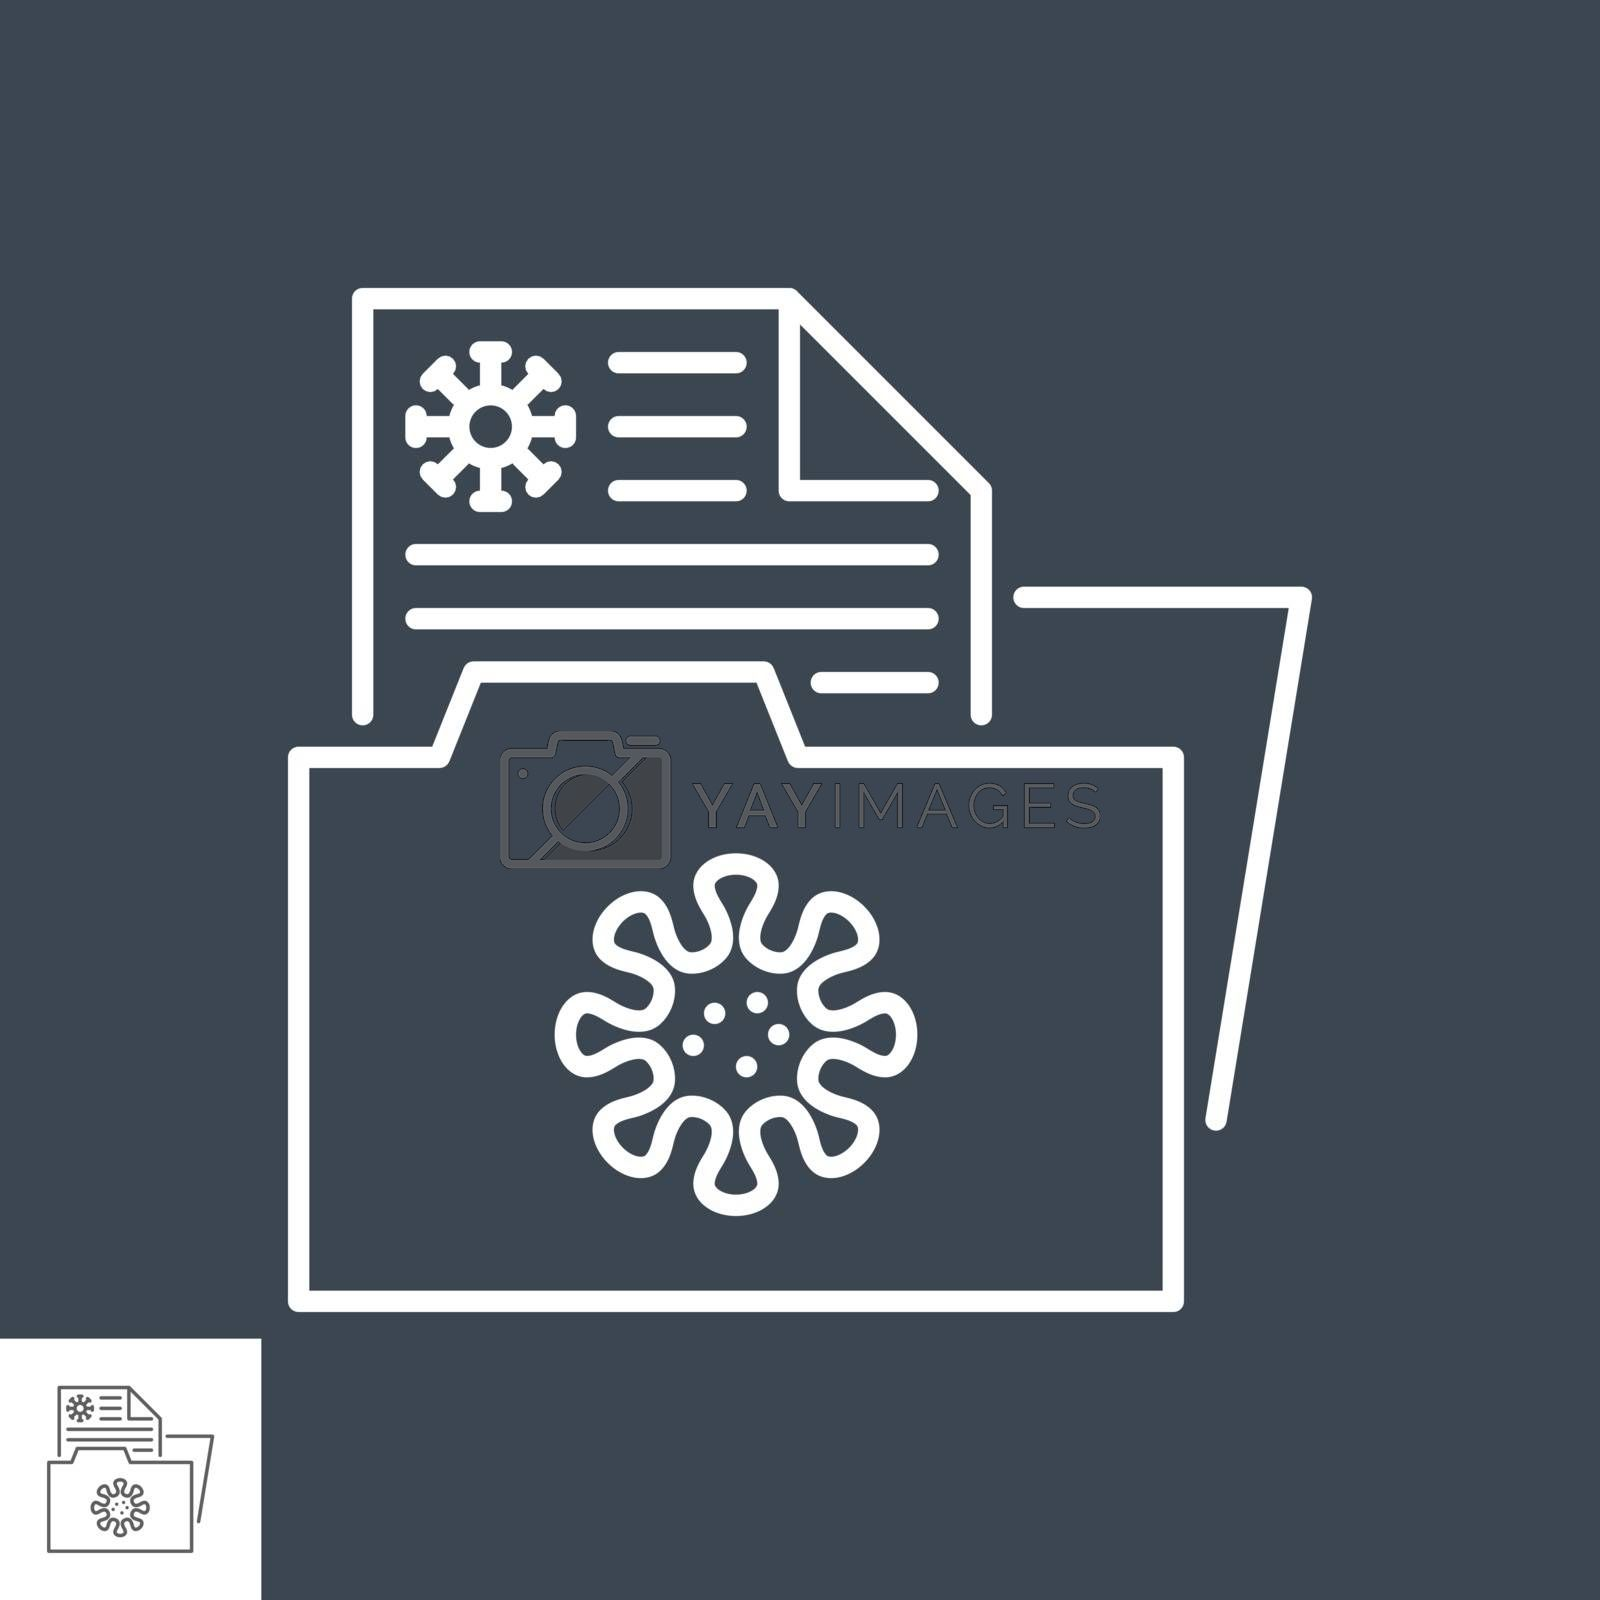 Virus information related vector thin line icon. Documents Folder with Virus Information. Isolated on black background. Editable stroke. Vector illustration.